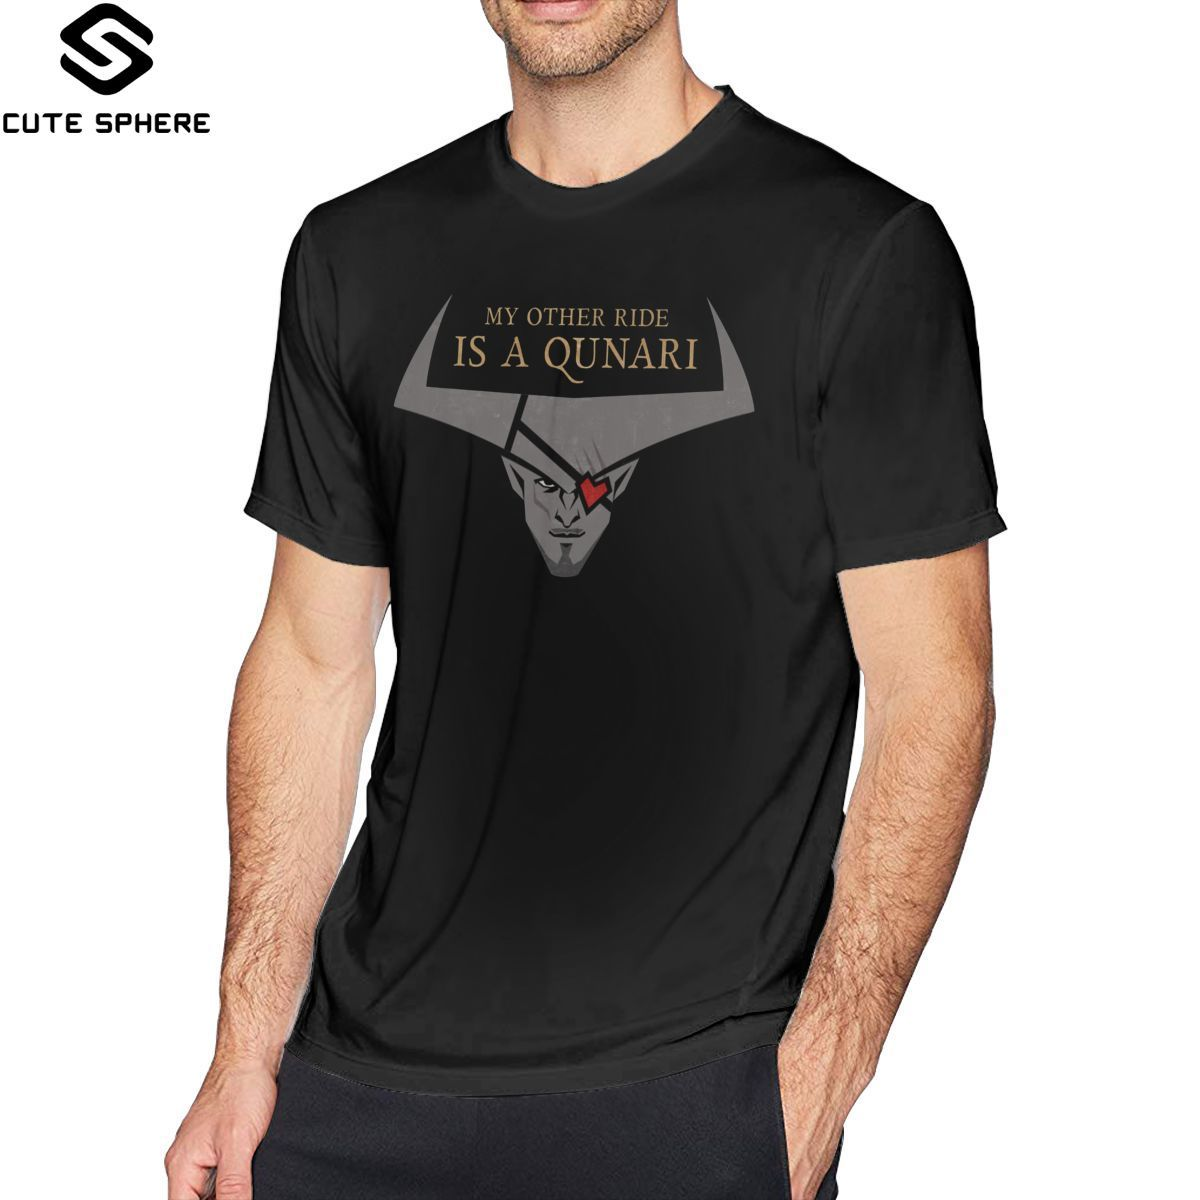 Dragon Age Inquisition T Shirt My Other Ride T-Shirt Short-Sleeve 100 Percent Cotton Tee Shirt Funny Tshirt